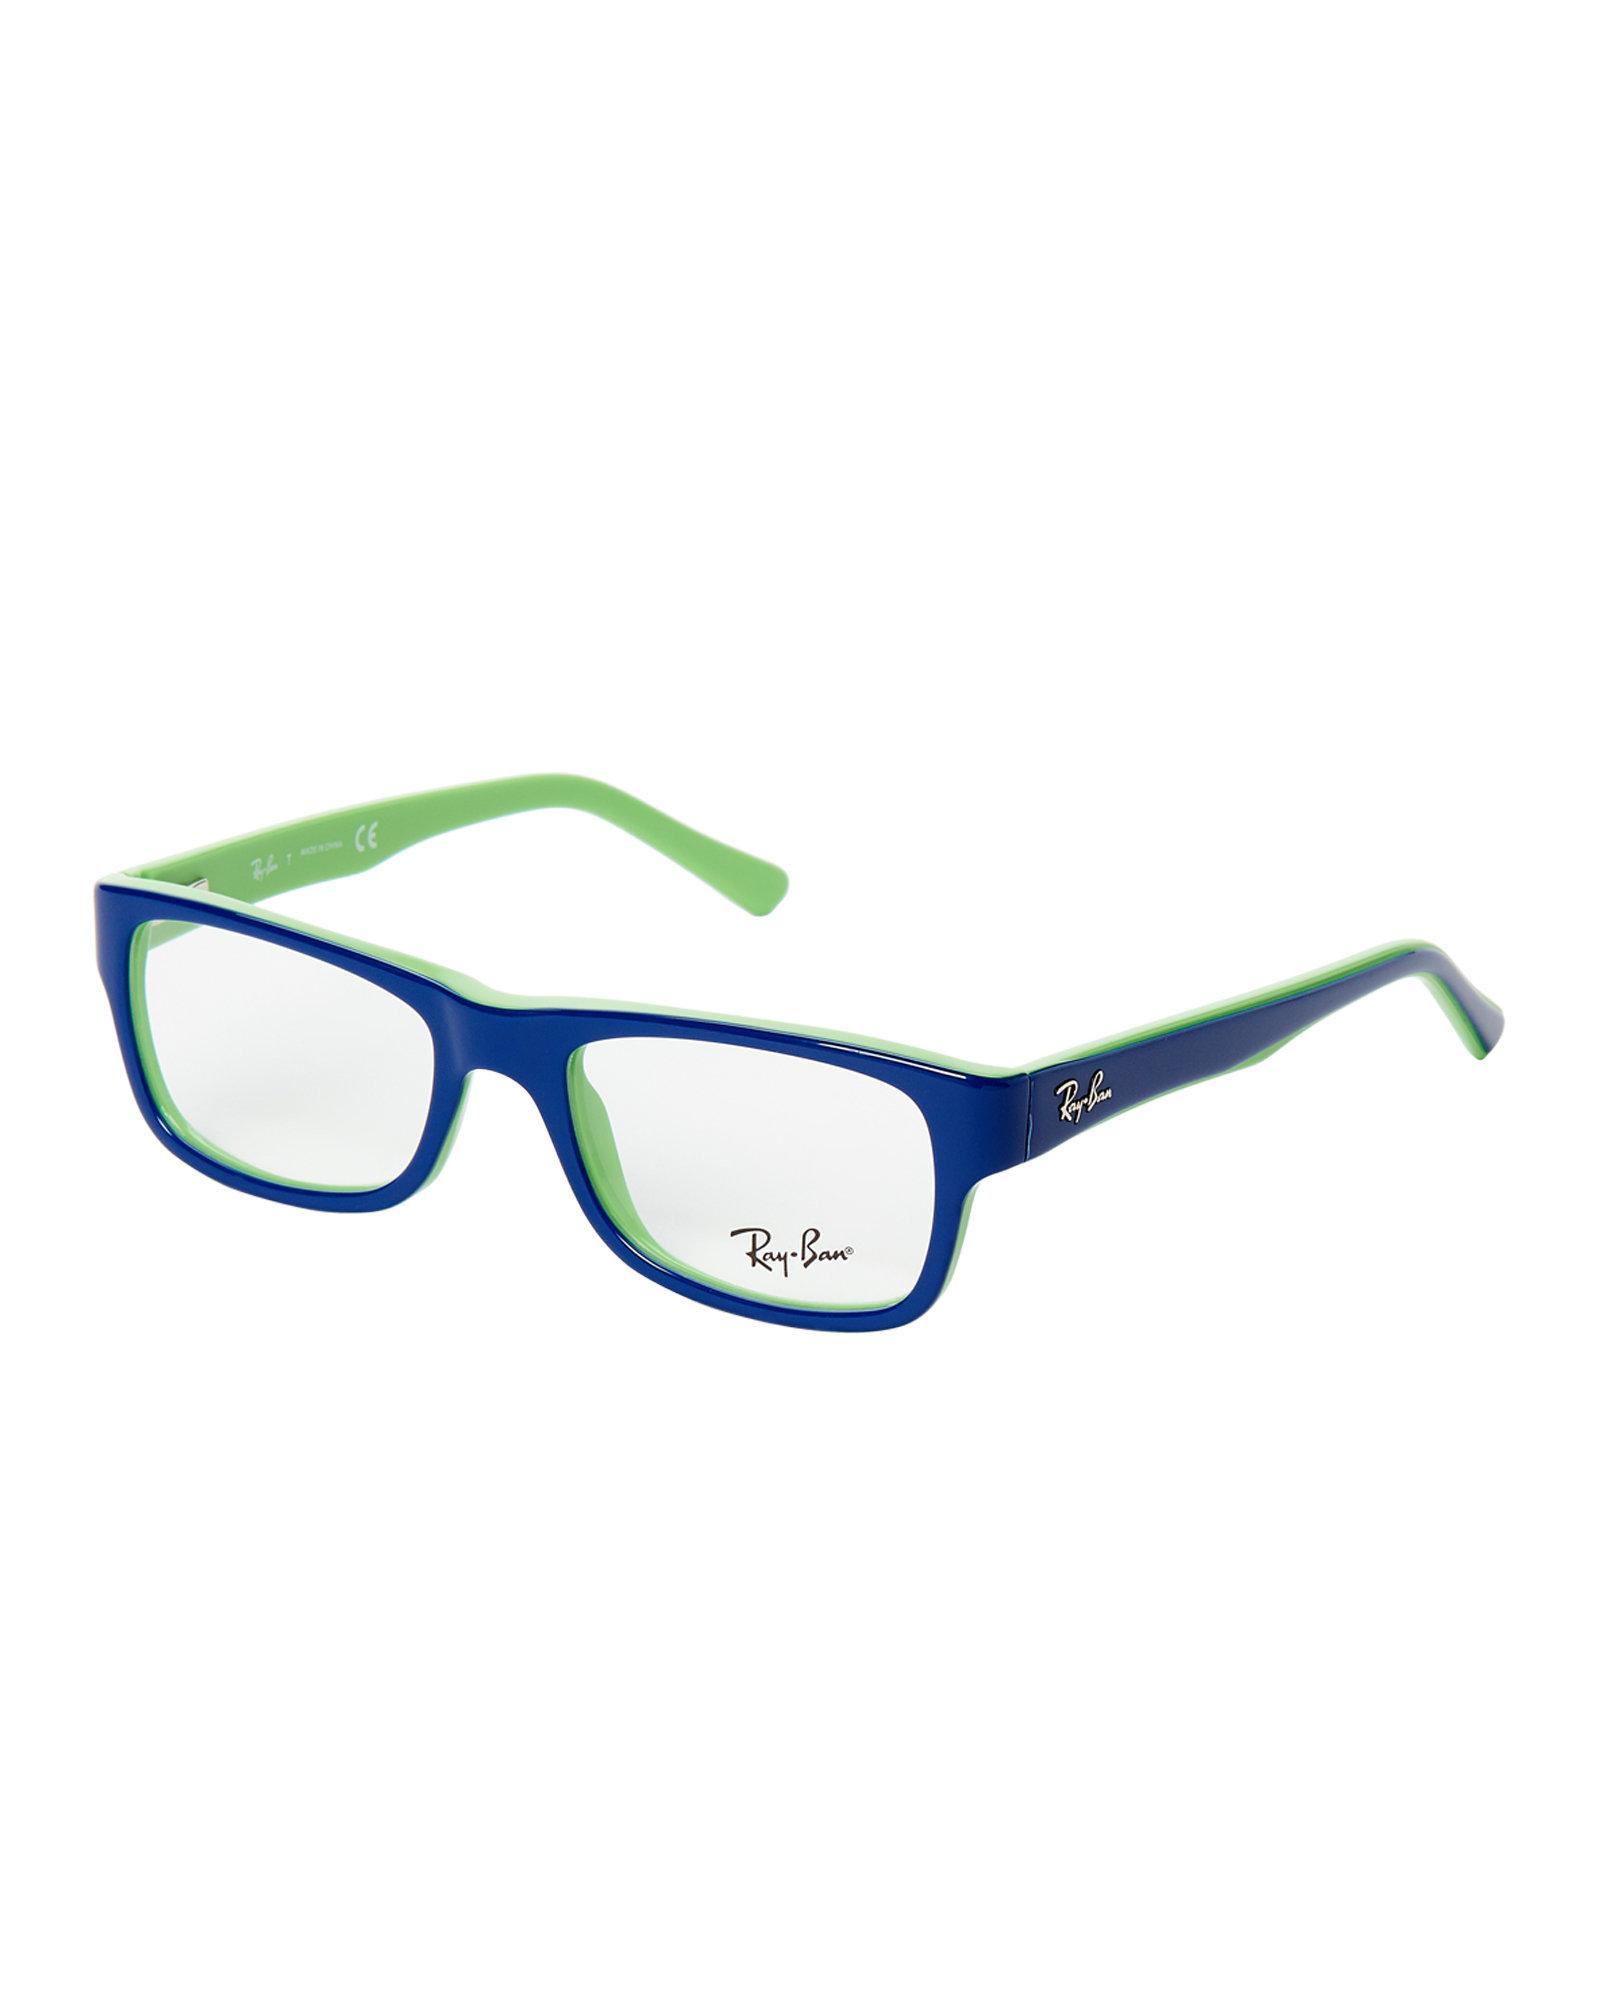 e1afda58f5a Lyst - Ray-Ban Rb5268 Blue   Green Rectangle Optical Frames in Blue ...